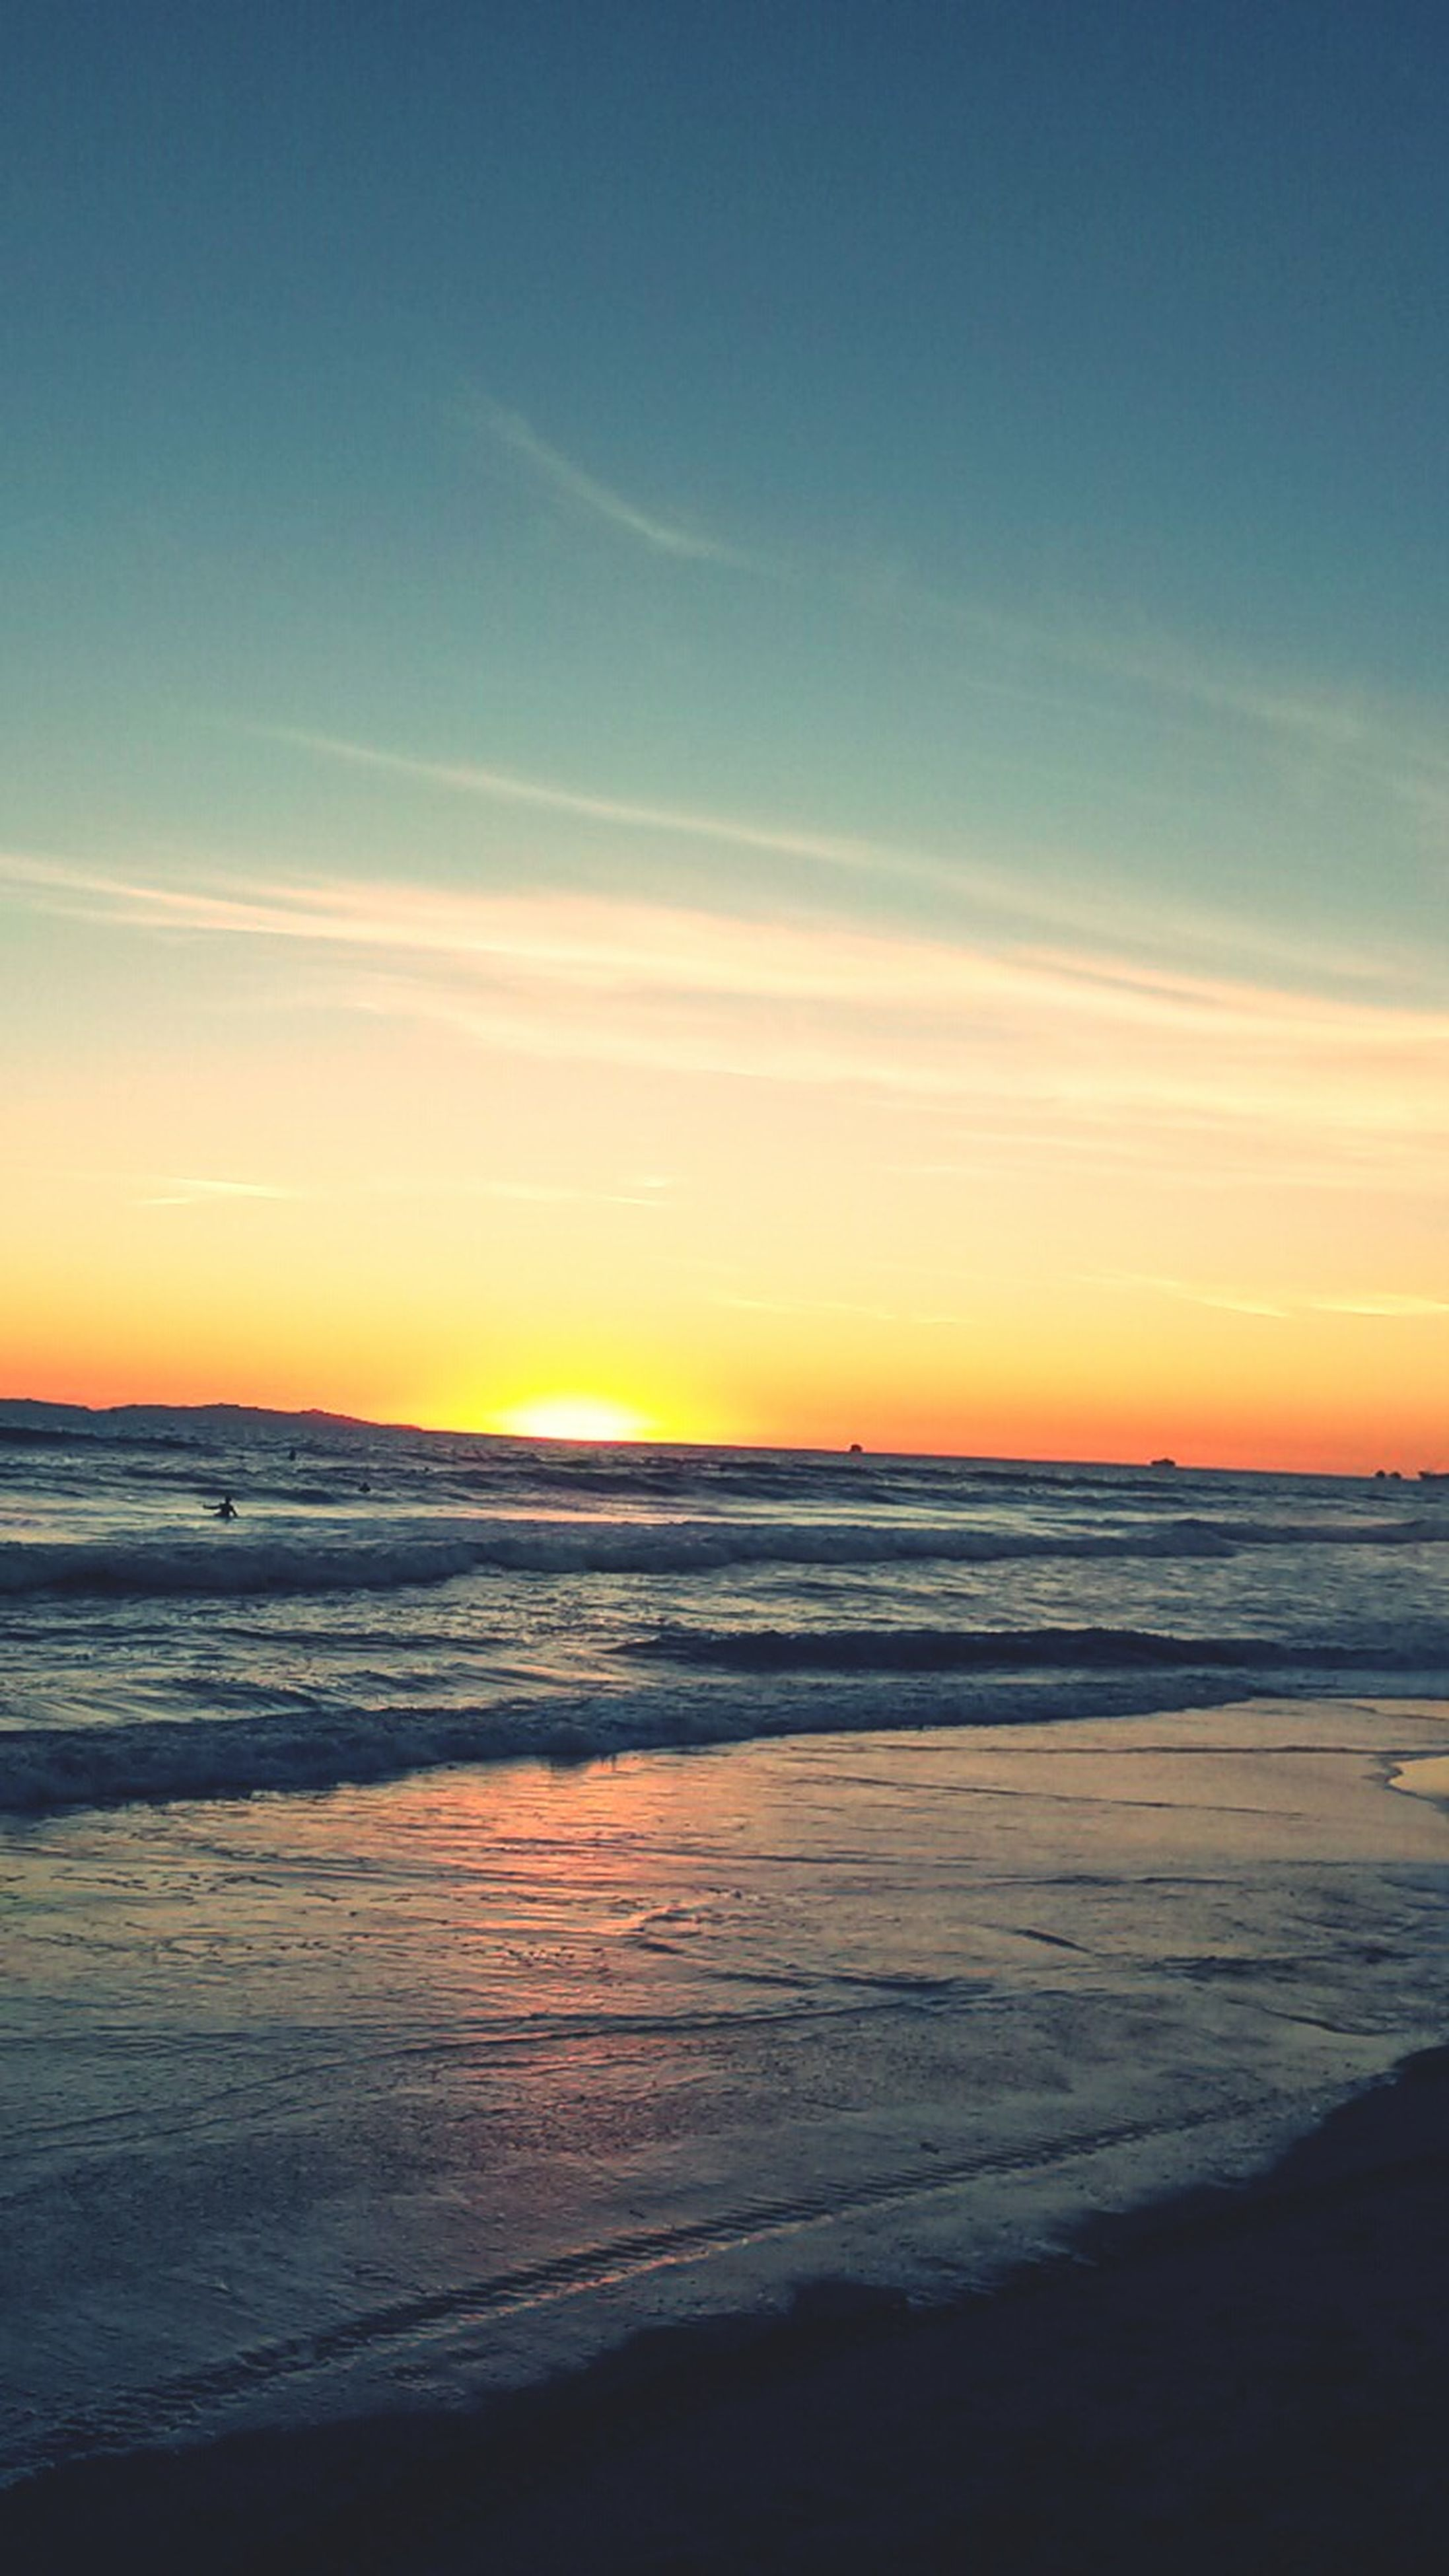 beach, sea, sunset, horizon over water, scenics, water, shore, tranquil scene, sky, beauty in nature, tranquility, sand, nature, idyllic, orange color, wave, cloud - sky, outdoors, surf, remote